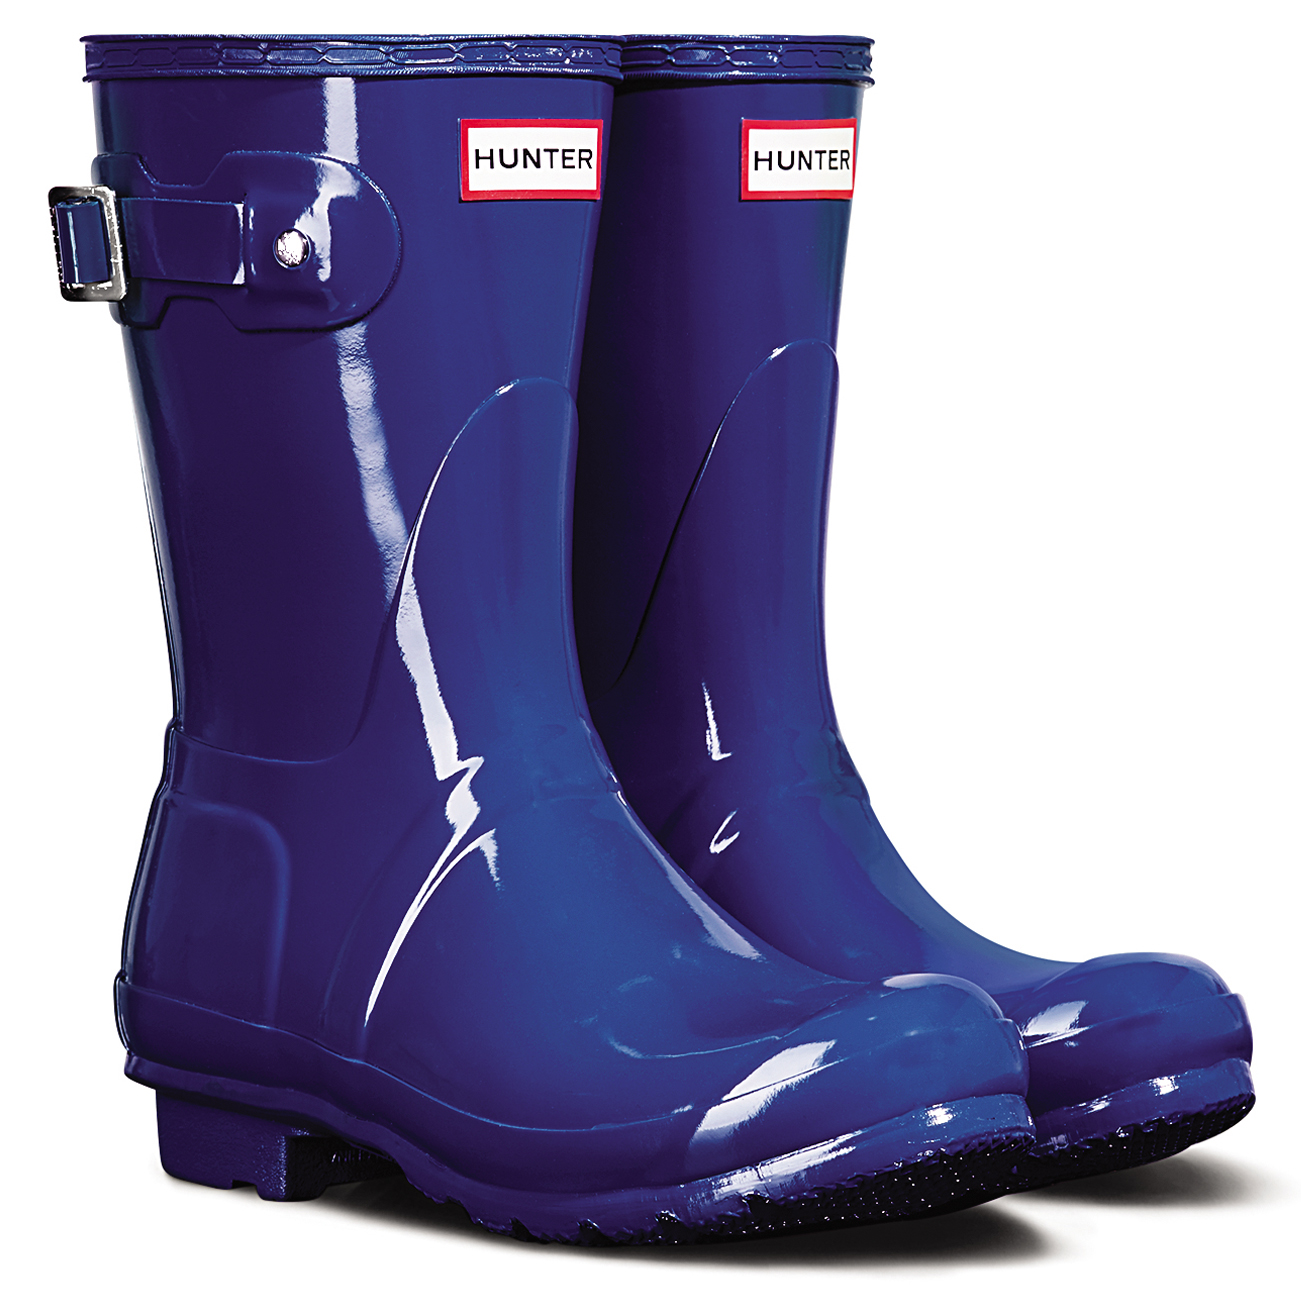 Damen Hunter Original Short Gloss Schnee Gummi Gummistiefel Wasserdicht - Azurblau - 37